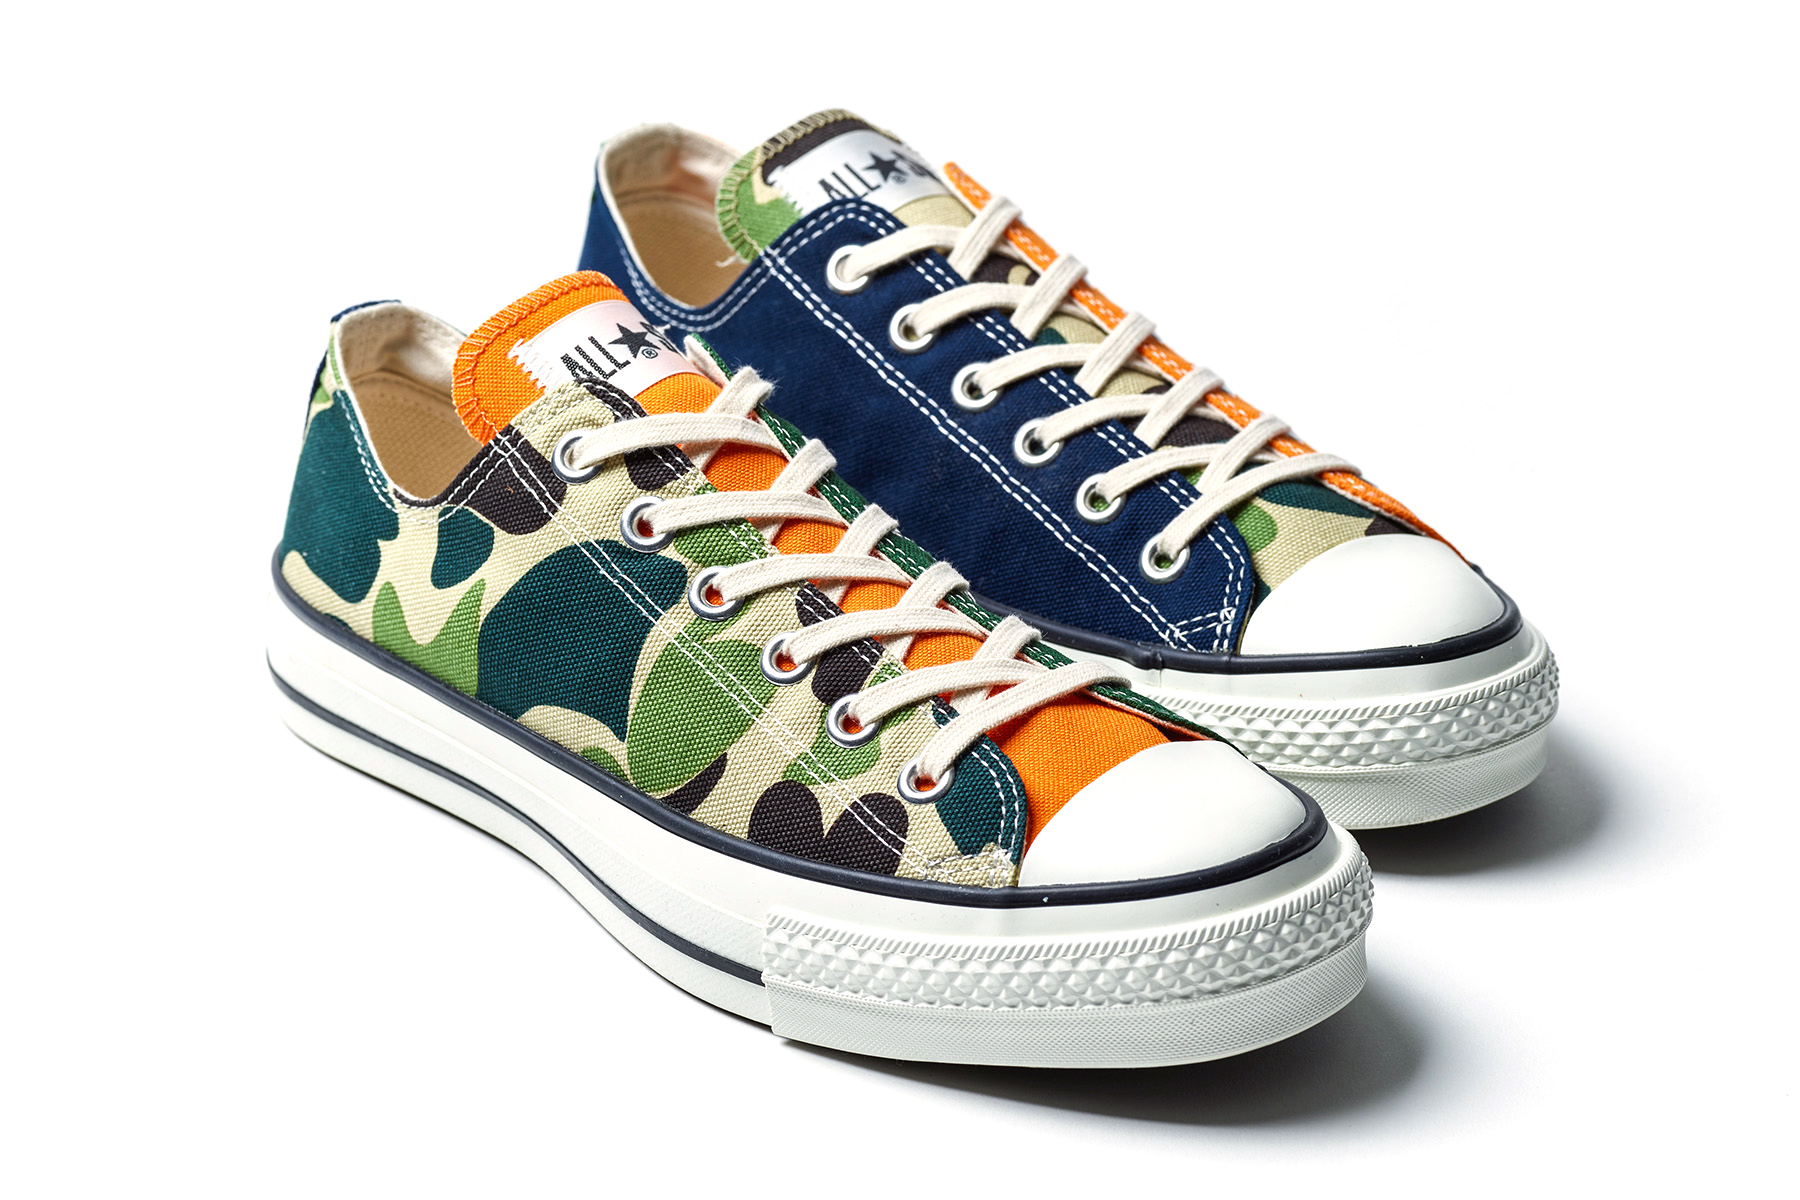 Billys X Converse All Star Low Camo Blue Orange Hypebeast Stars Ent J Details Cop Purchase Buy Available New Shoes Trainers Kicks